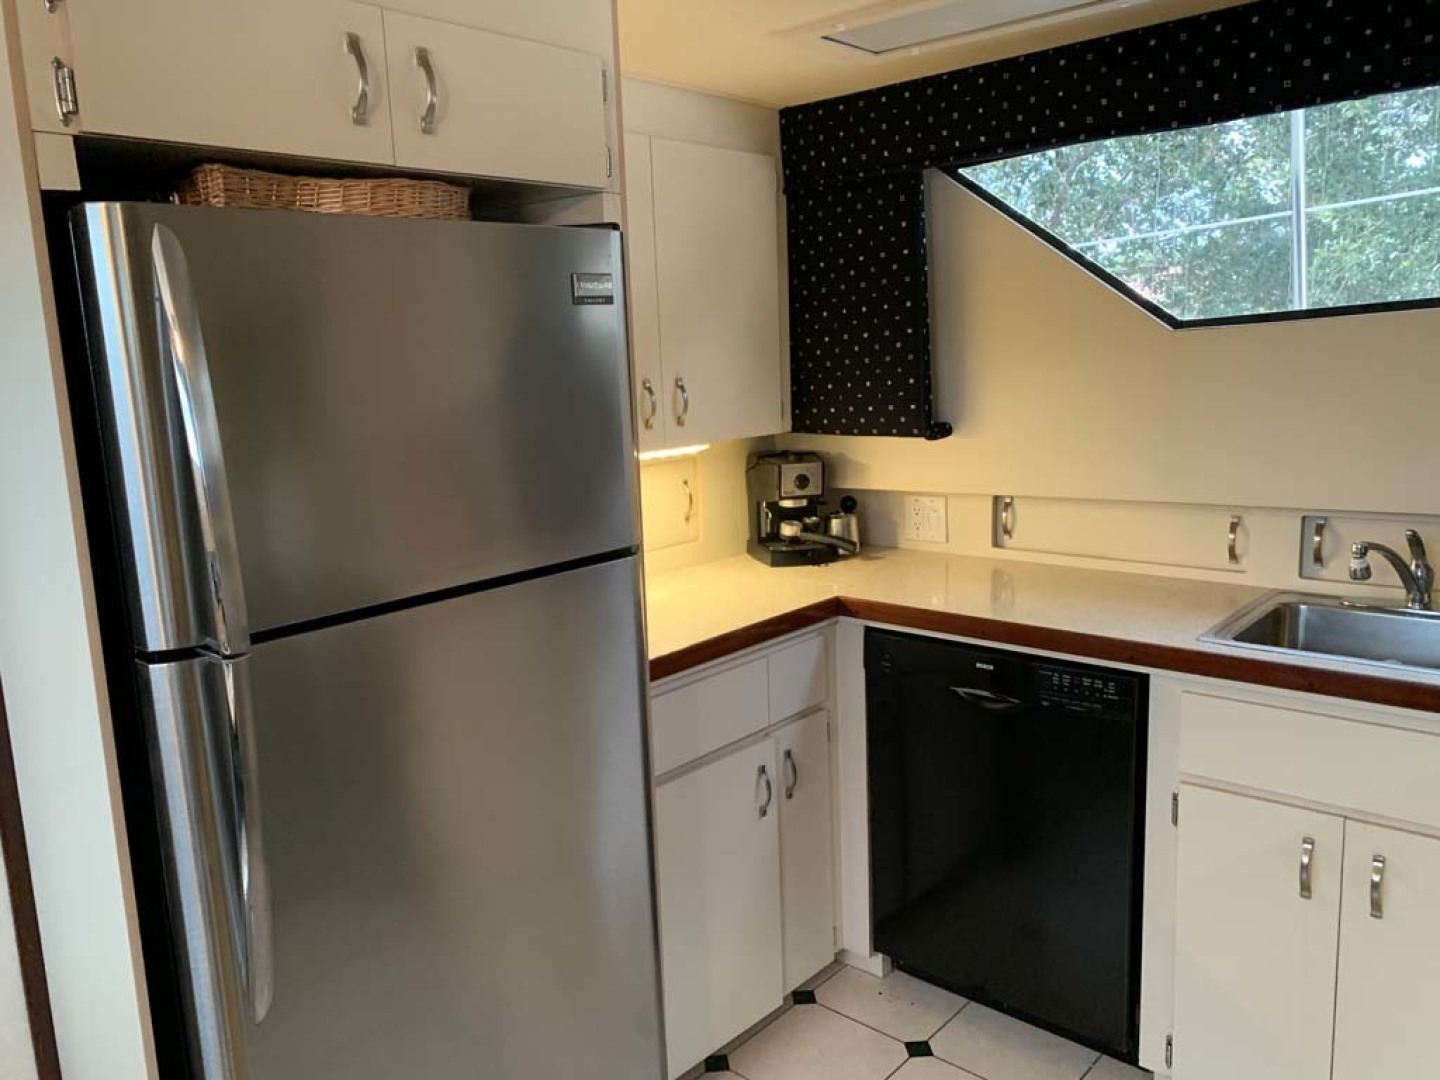 Hatteras-Euro Transom Motor Yacht 1989-Different Drummer II Stuart-Florida-United States-Galley Refrigerator-1449956 | Thumbnail